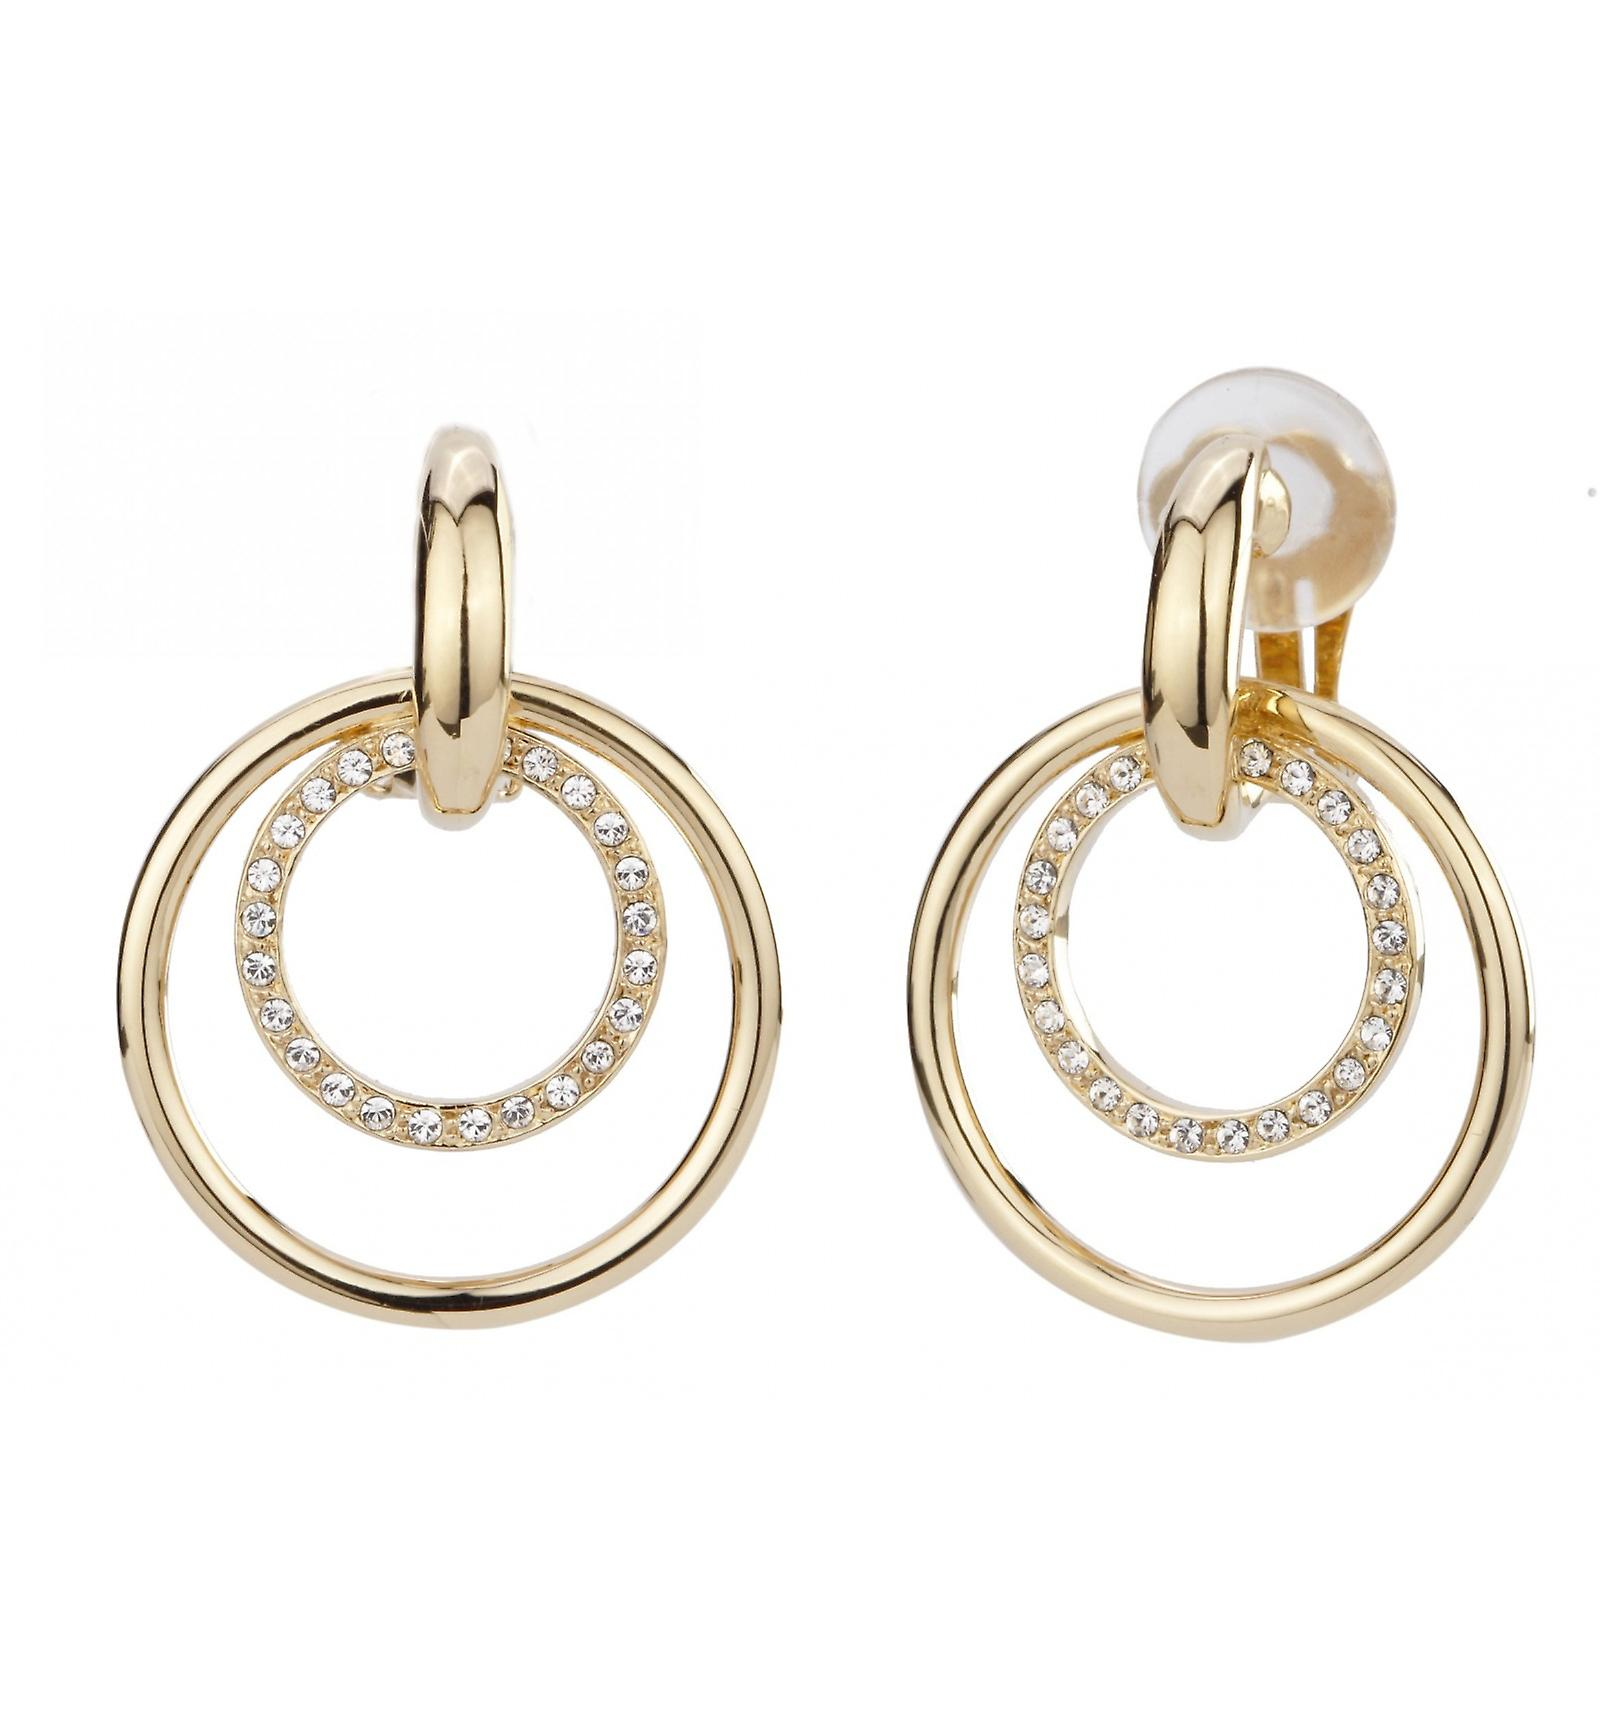 Traveller clip earring - Hanging - 22ct gold plated - Swarovski Crystals - 157105